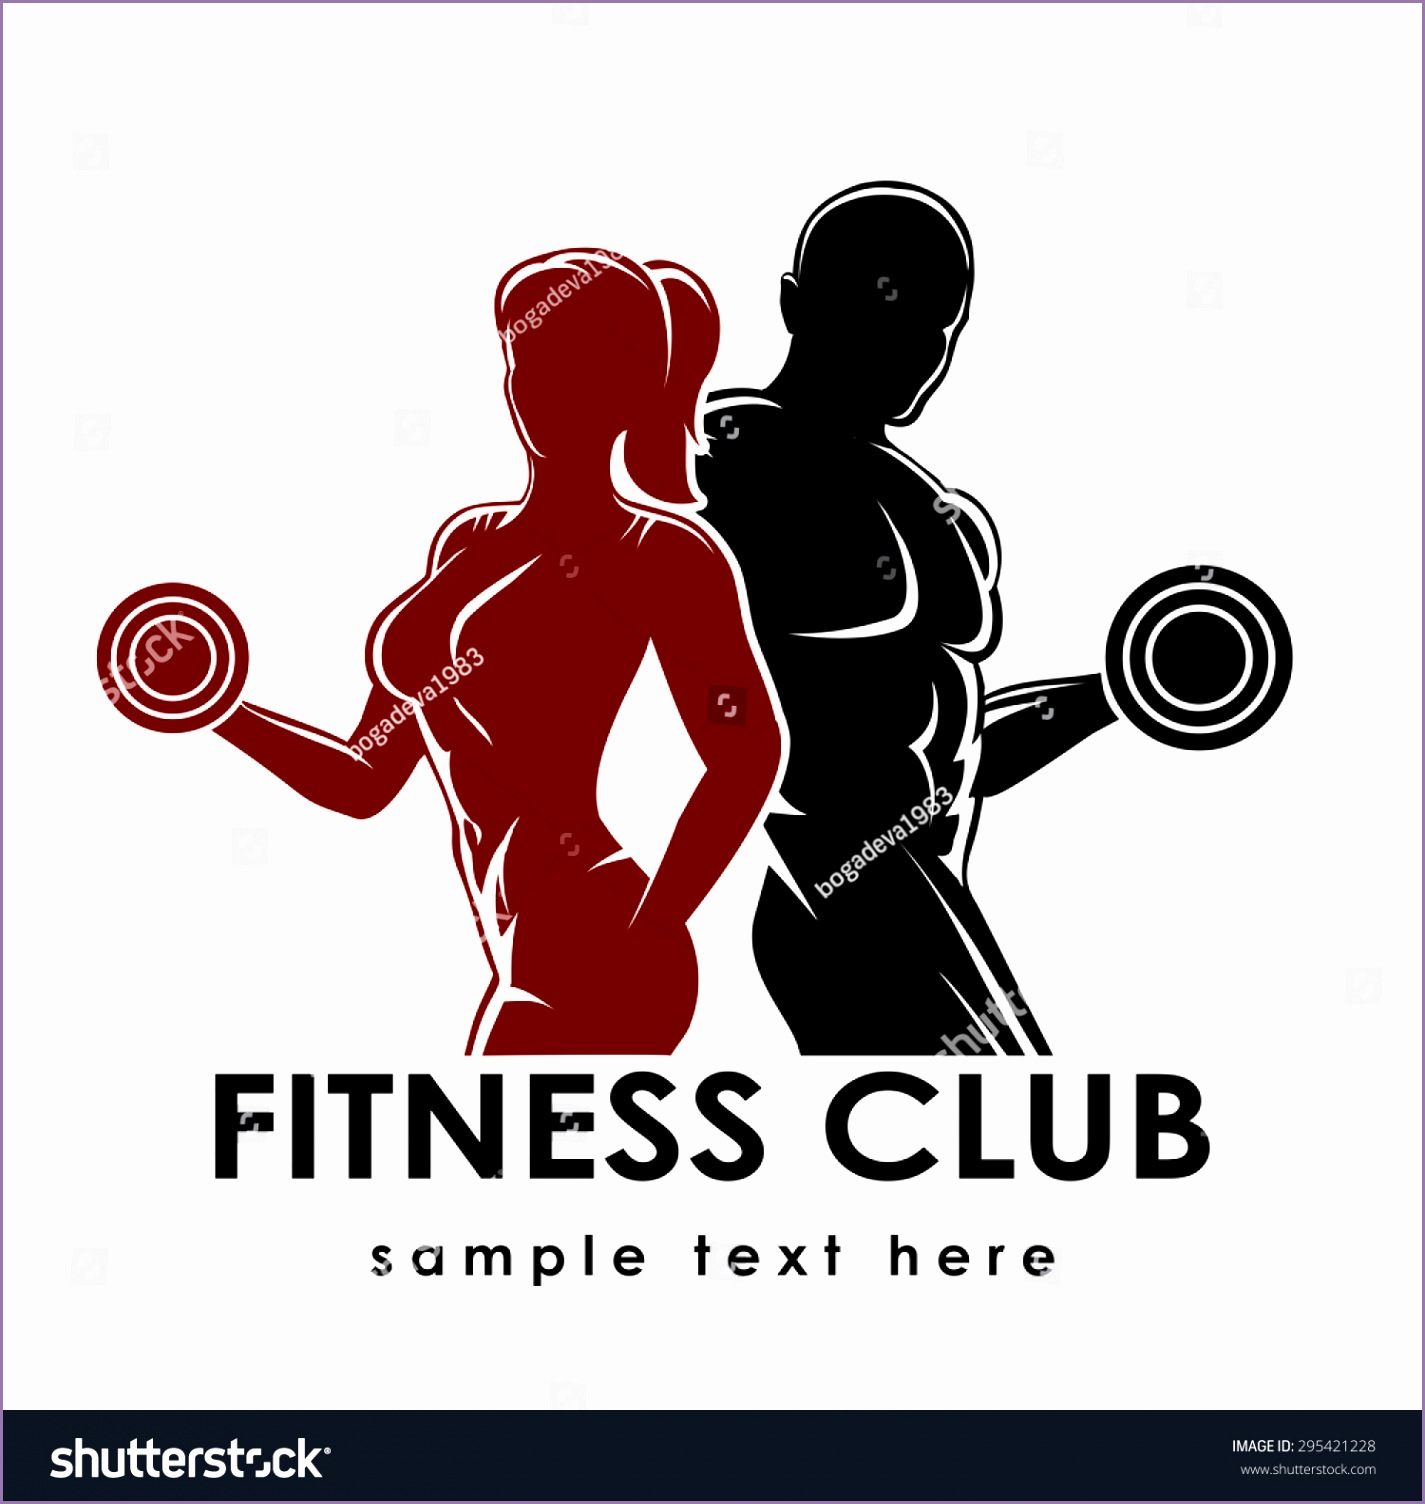 stock vector fitness club logo or emblem with woman and man silhouettes woman and man holds dumbbells isolated